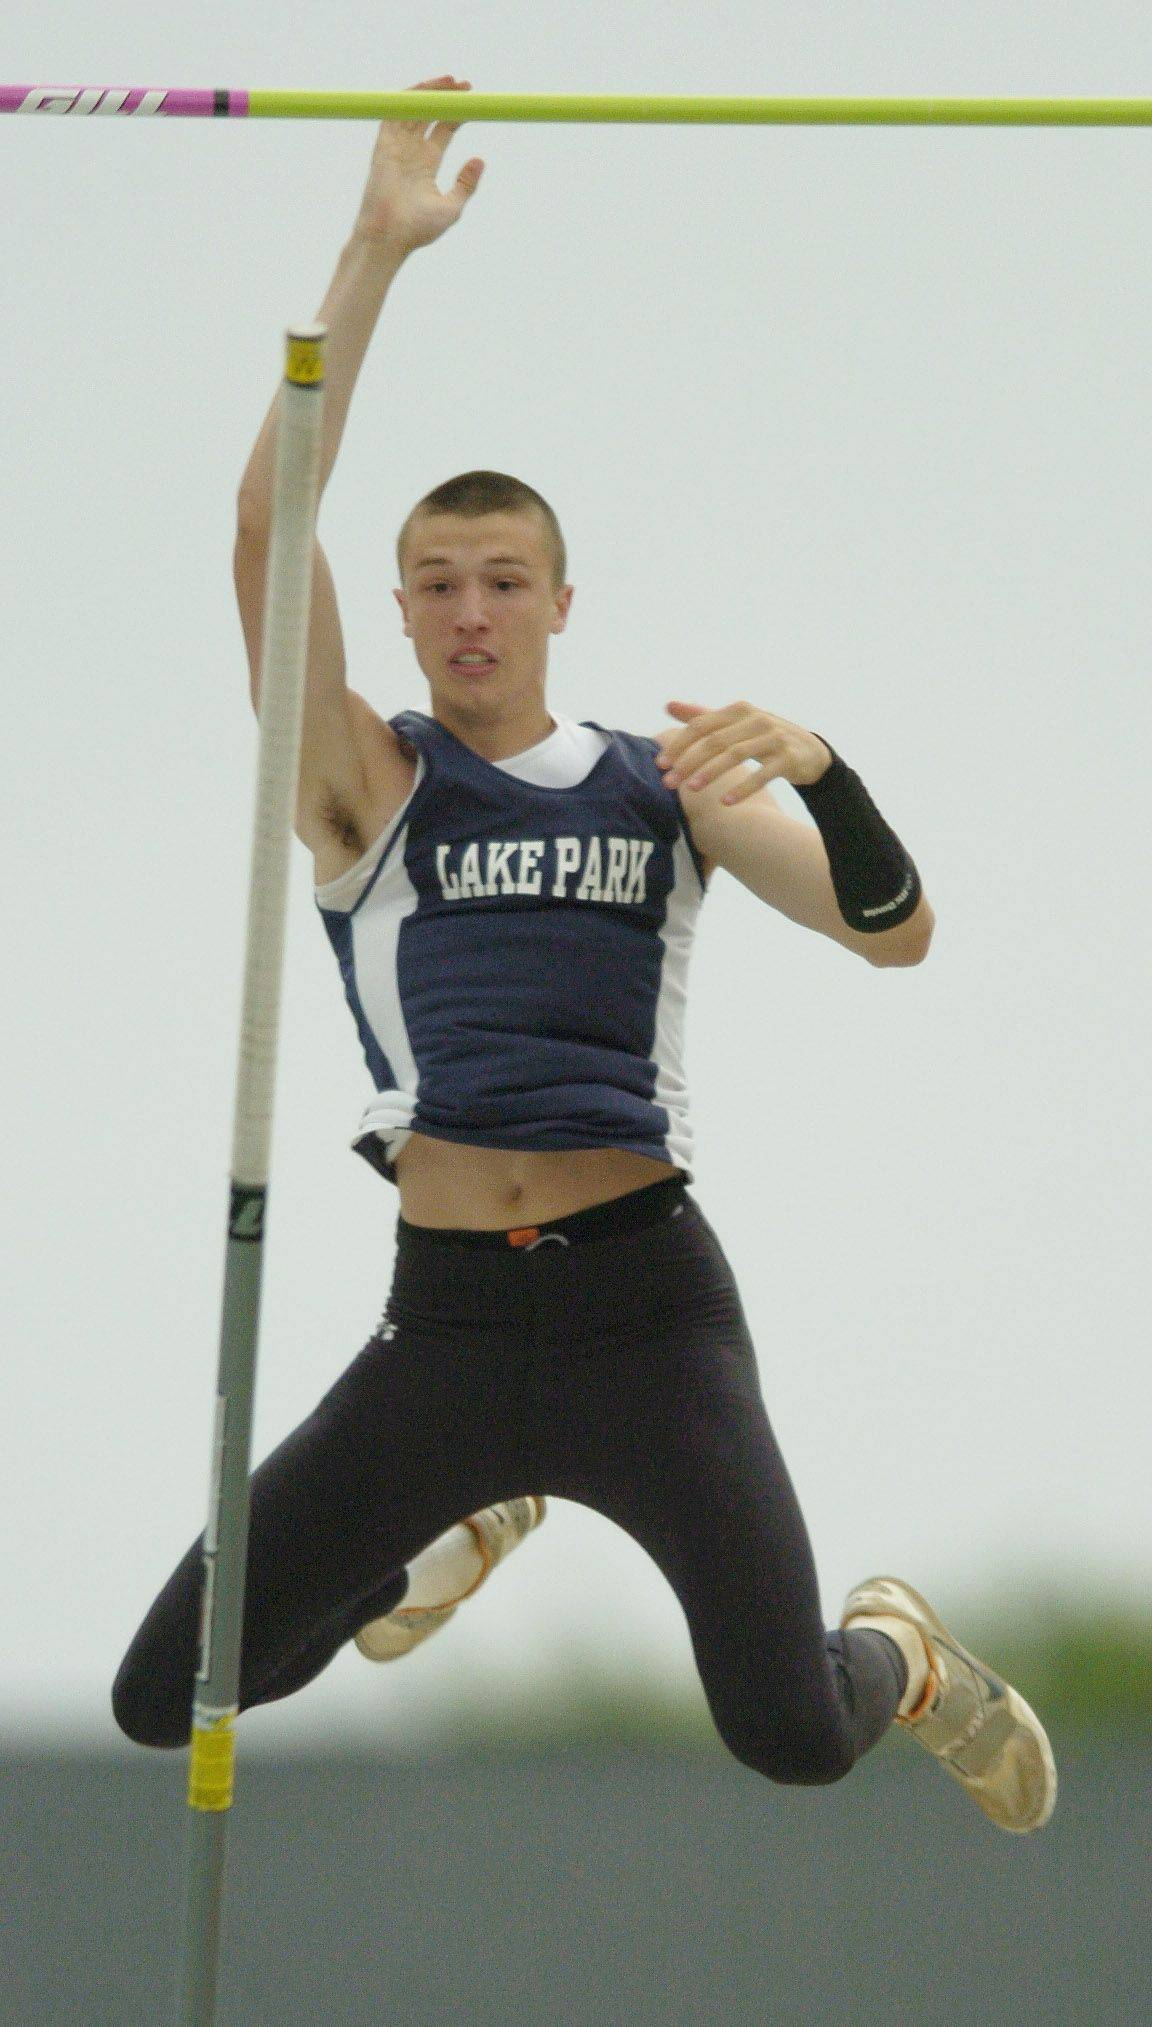 Lake Park's Zach Ziemek clears the bar in the class 3A pole vault during the boys state track finals in Charleston Saturday.